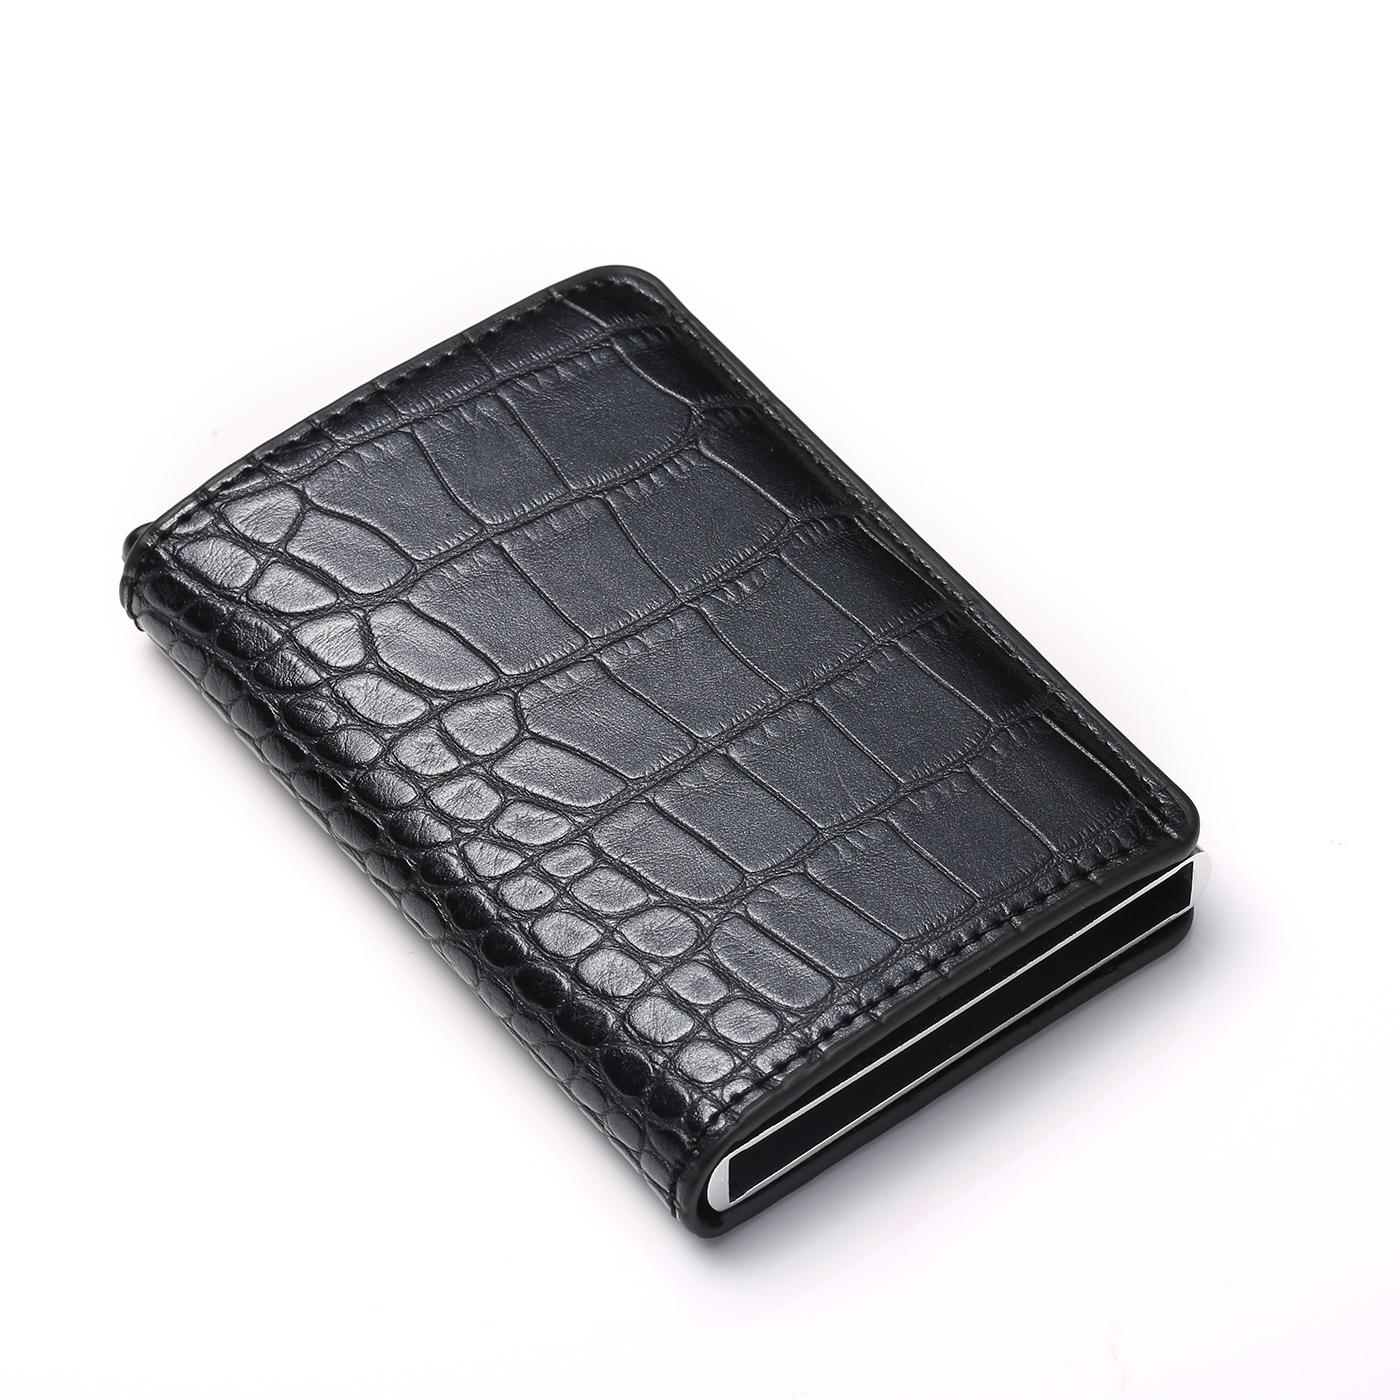 BISI GORO 2019 Credit <font><b>Card</b></font> Carbon Fiber <font><b>Slim</b></font> RFID <font><b>Card</b></font> Wallet